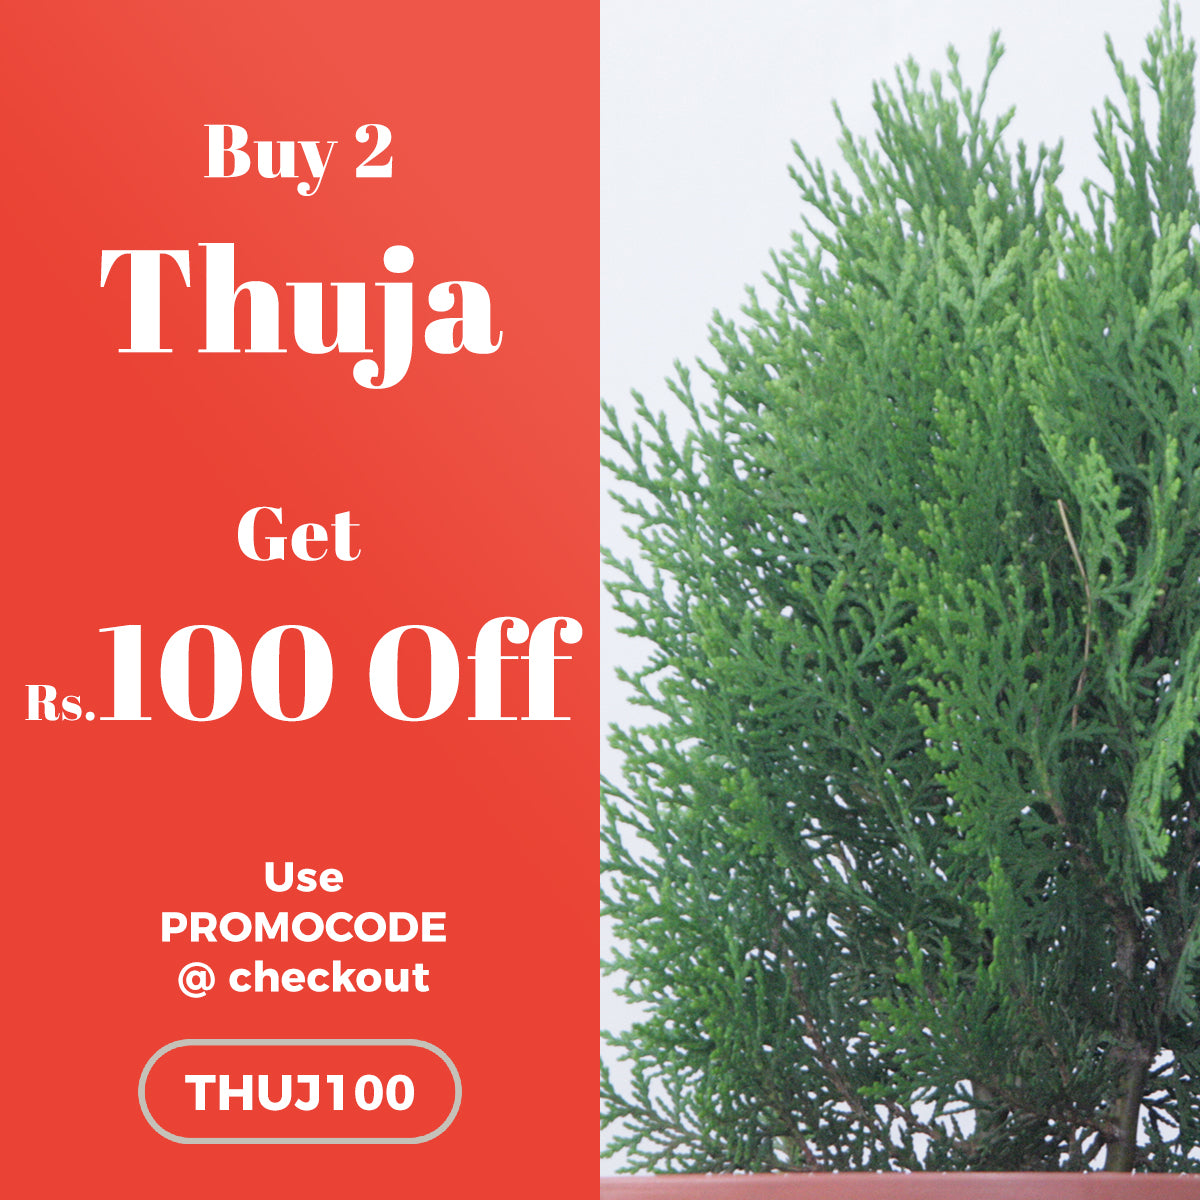 Buy 2 Thuja Plant and get Rs.100 OFF